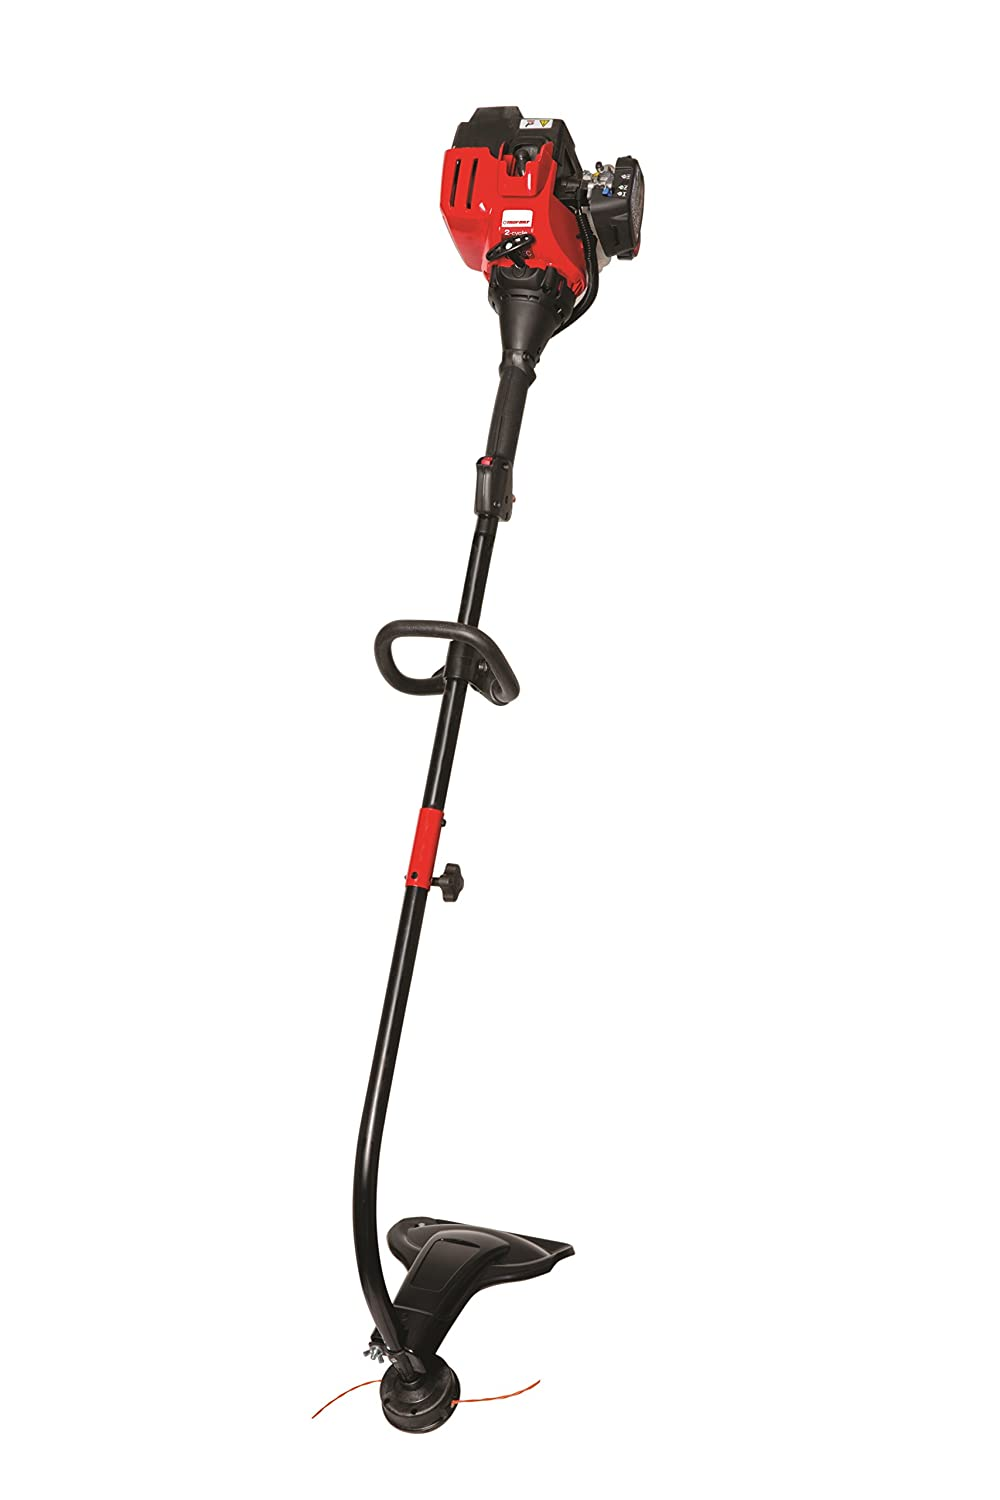 Amazon.com : Troy-Bilt TB22 EC 25cc 2-cycle Curved Shaft String Trimmer : Gas Weed Eater : Garden & Outdoor